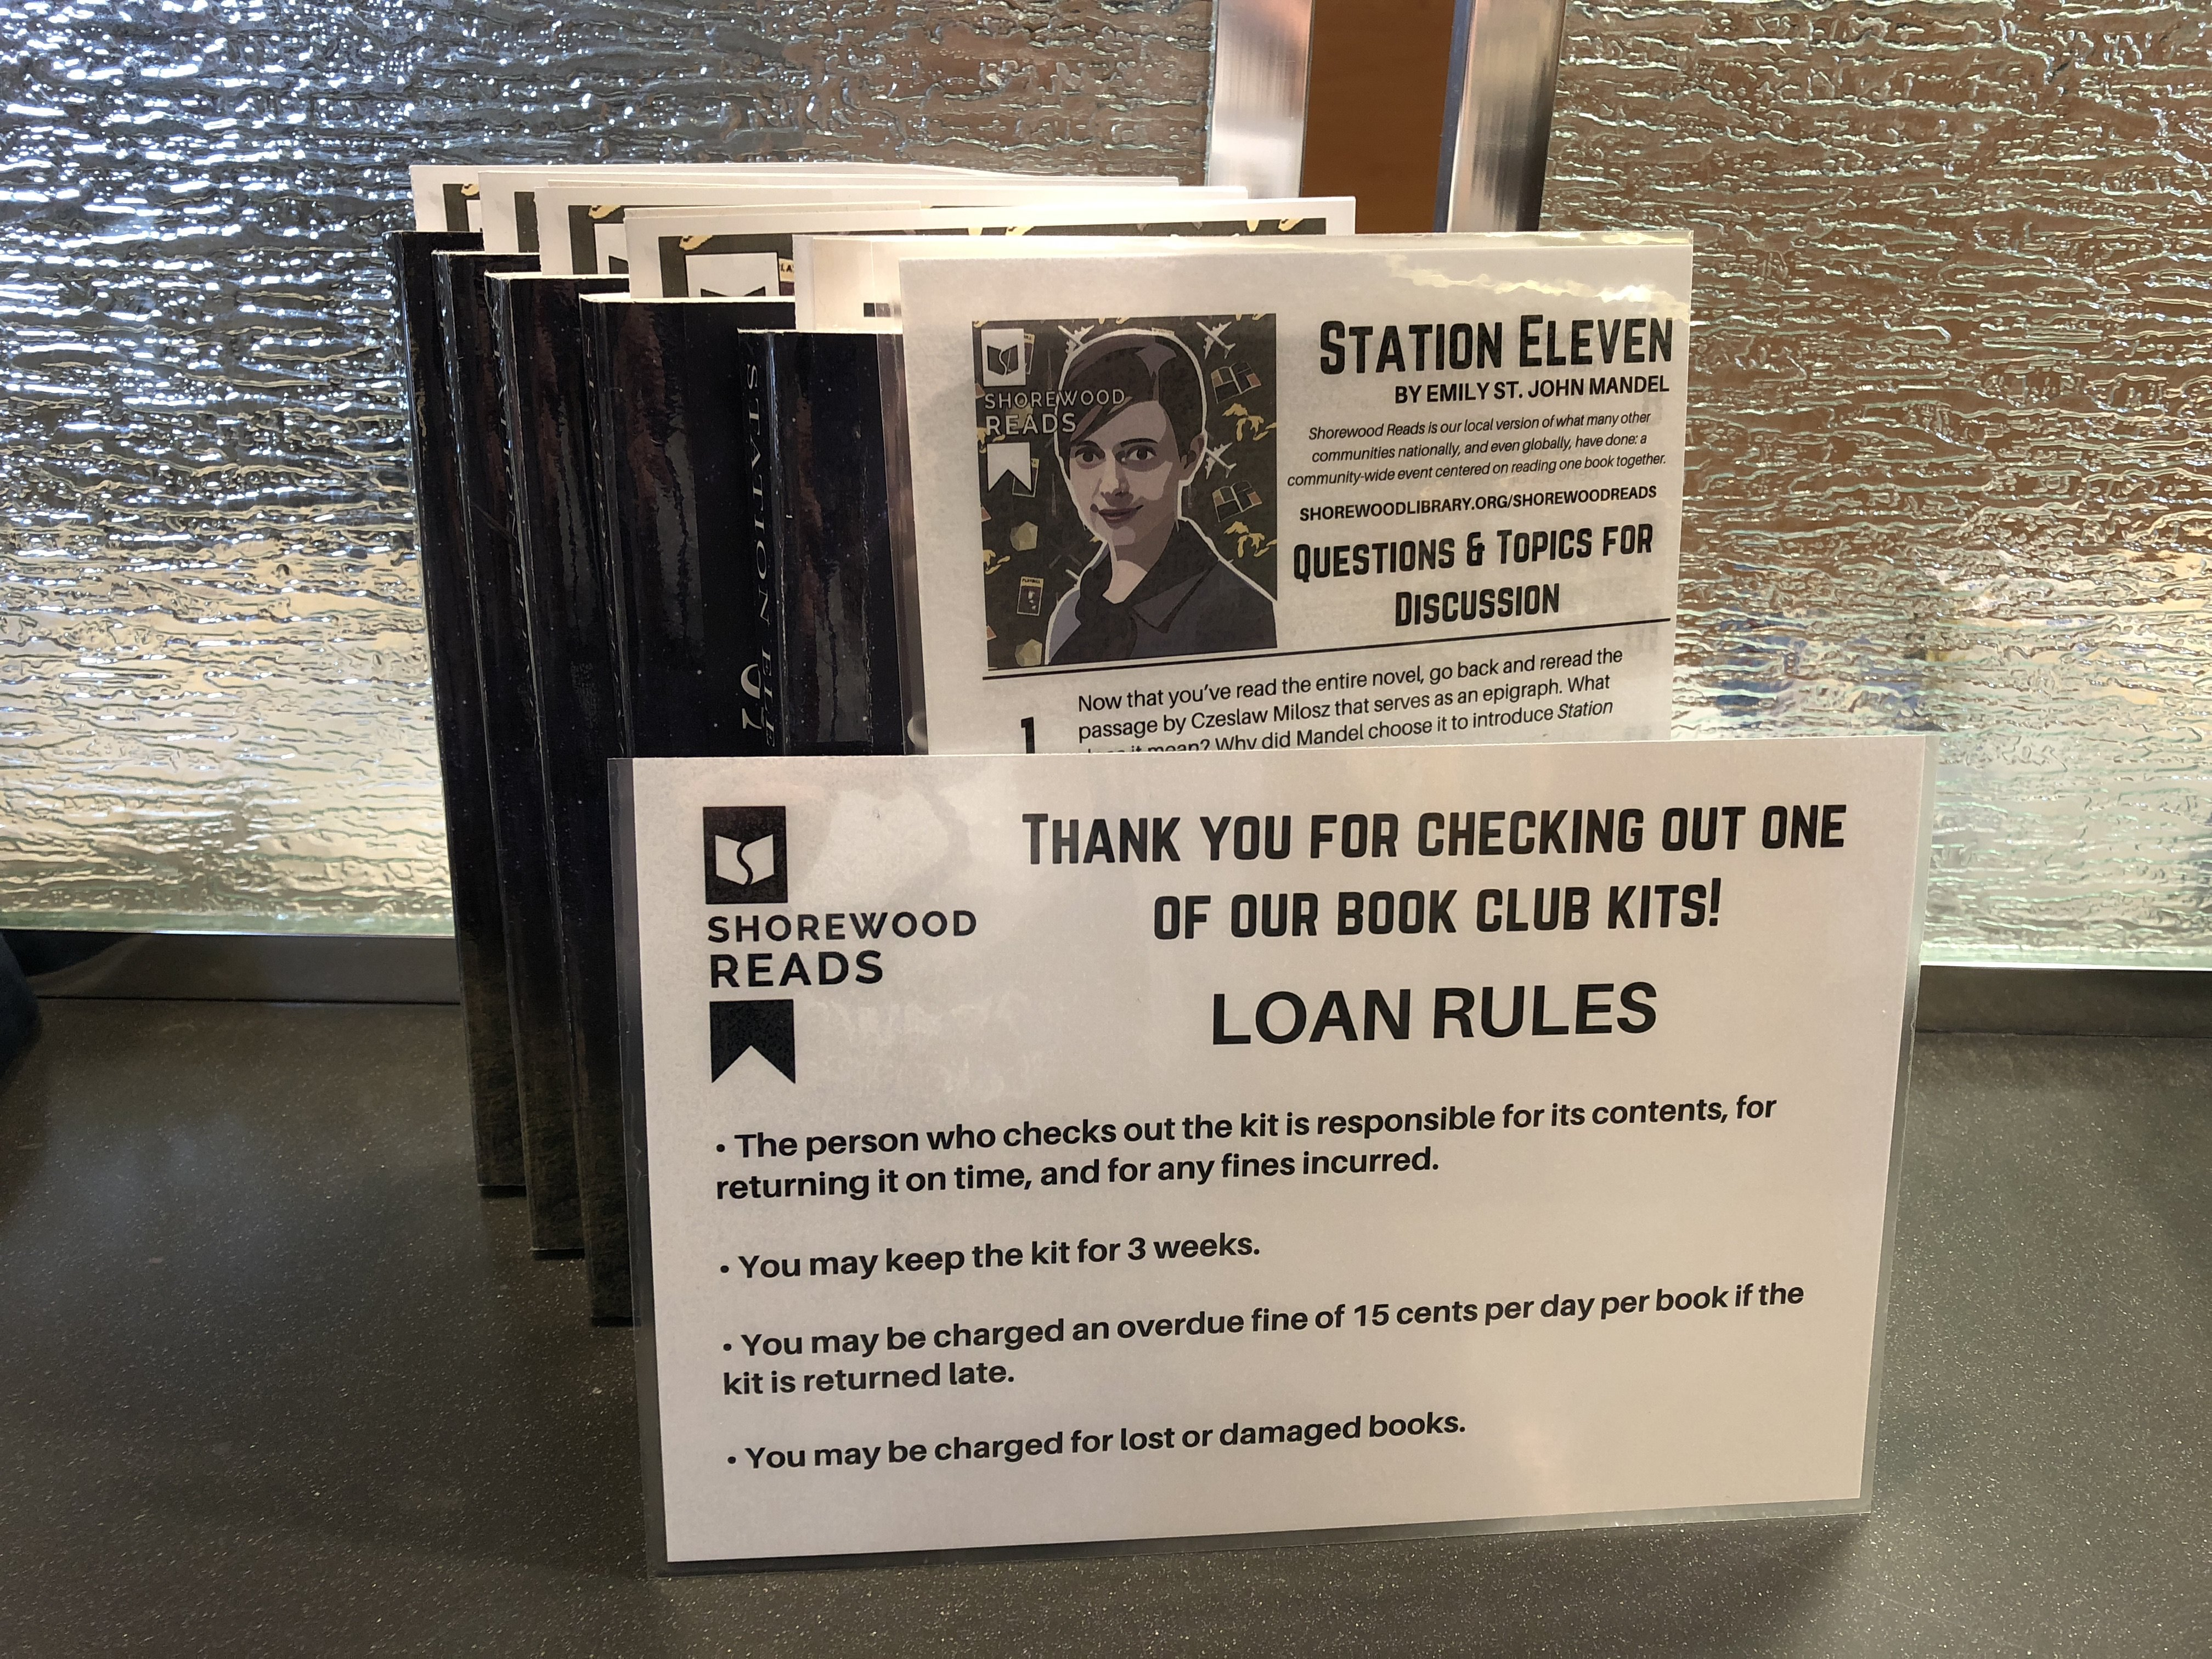 Copies of Station Eleven by a Shorewood Reads Loan Rules sign propped.